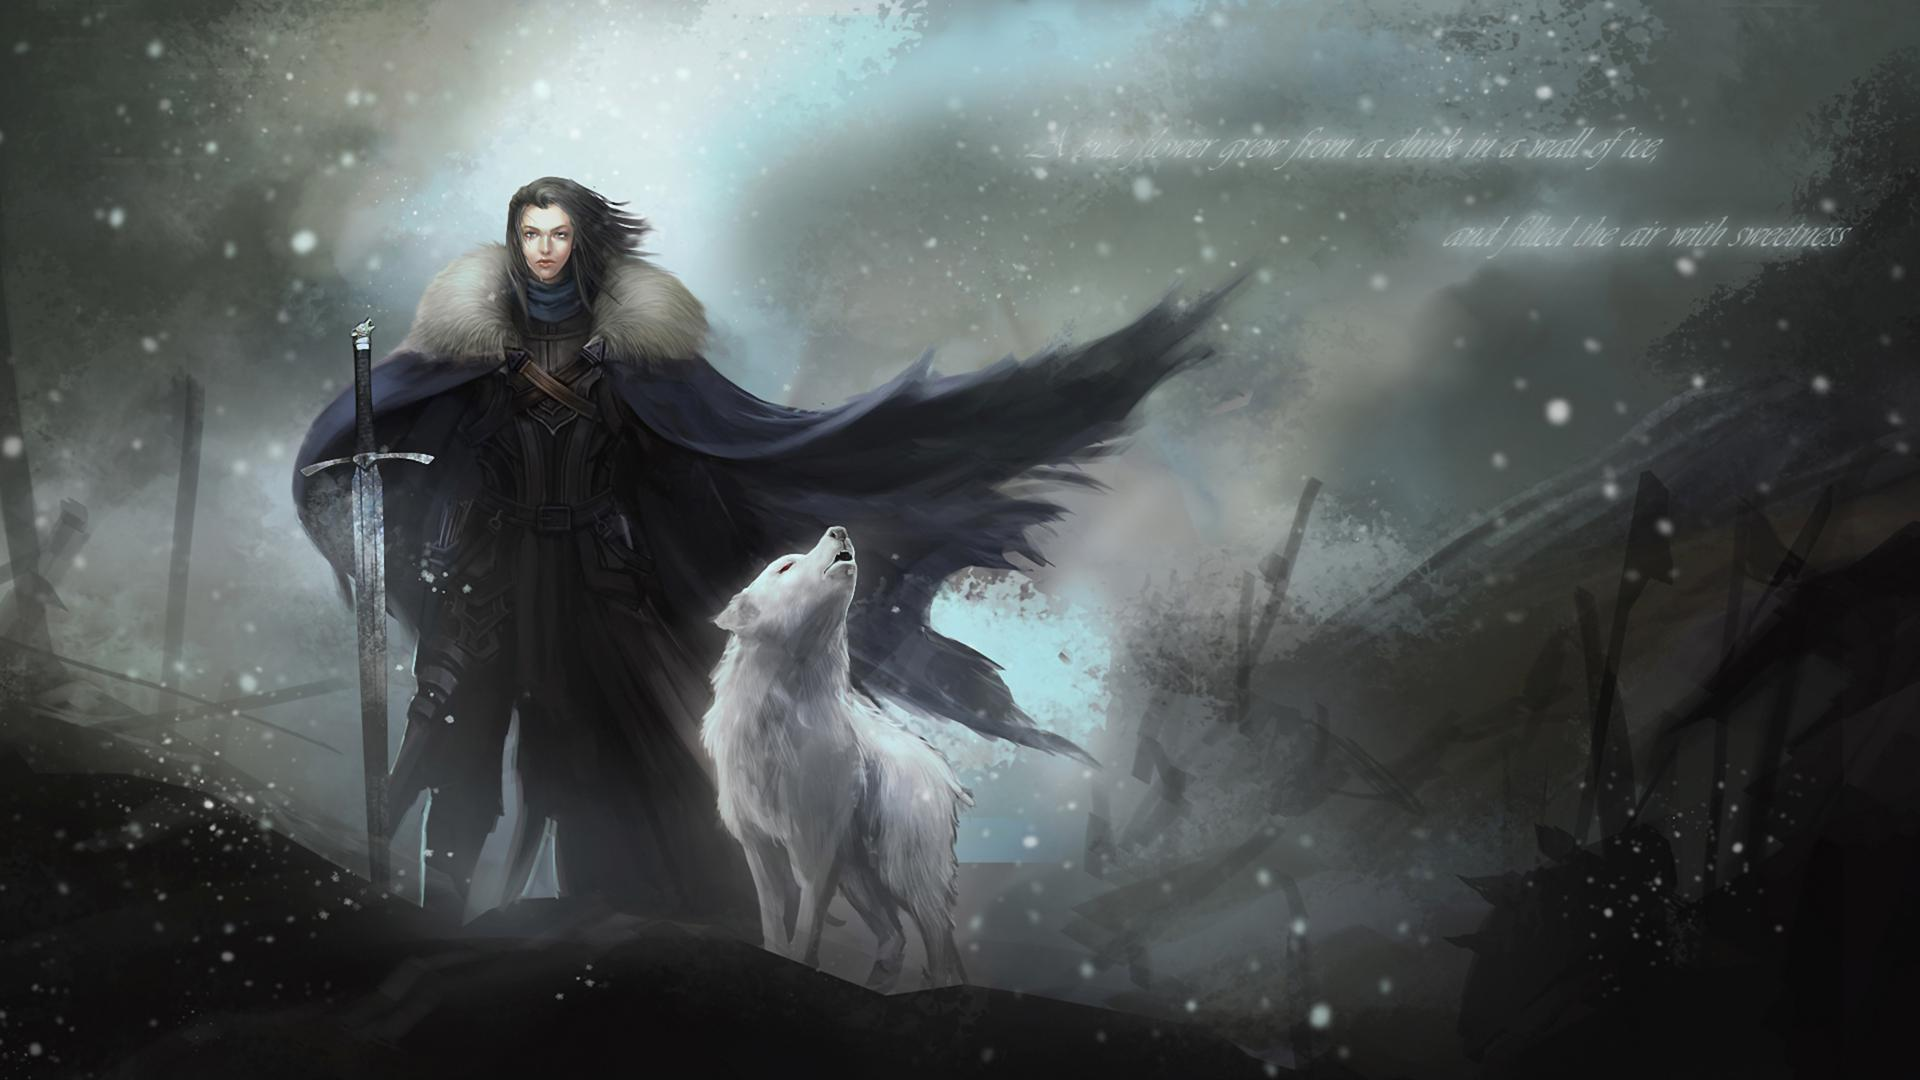 Hd Wallpapers Backgrounds For Game Of Thrones Free For: Jon Snow Y Fantasma